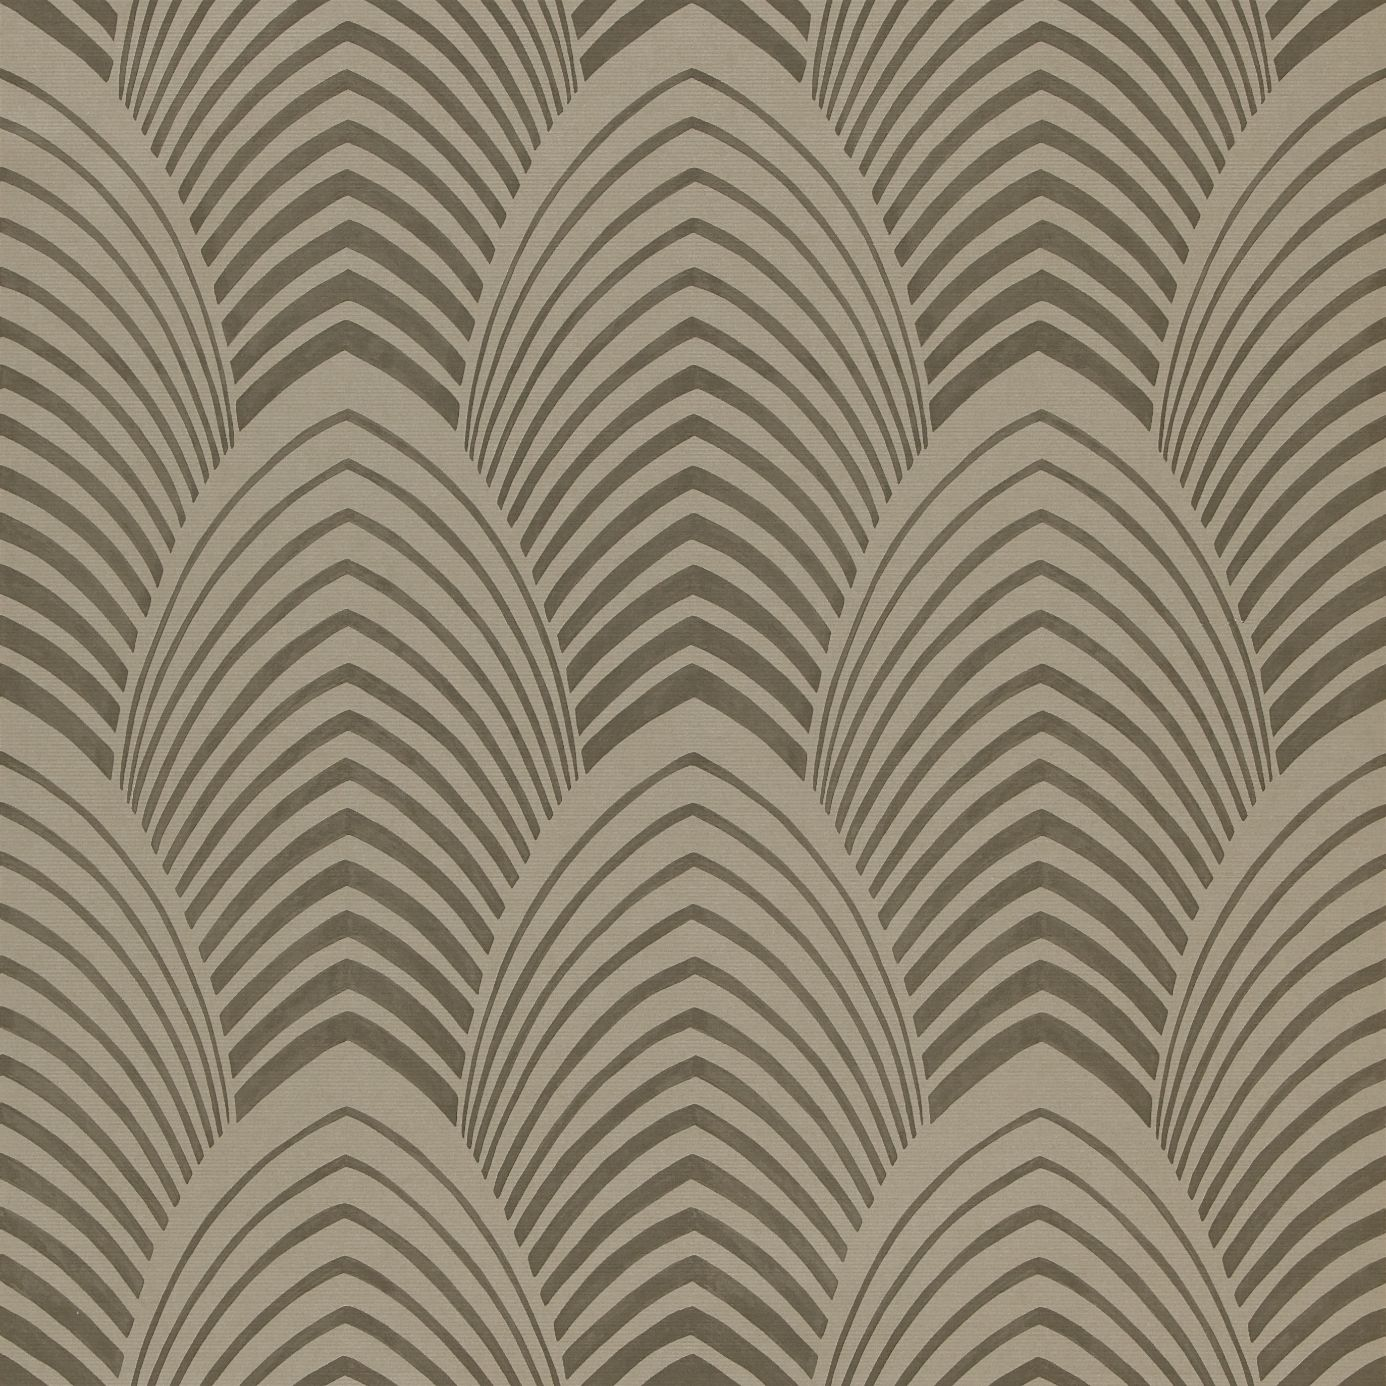 Deco Wallpaper Akrona Wallpaper Collection Harlequin Wallpaper 1386x1386